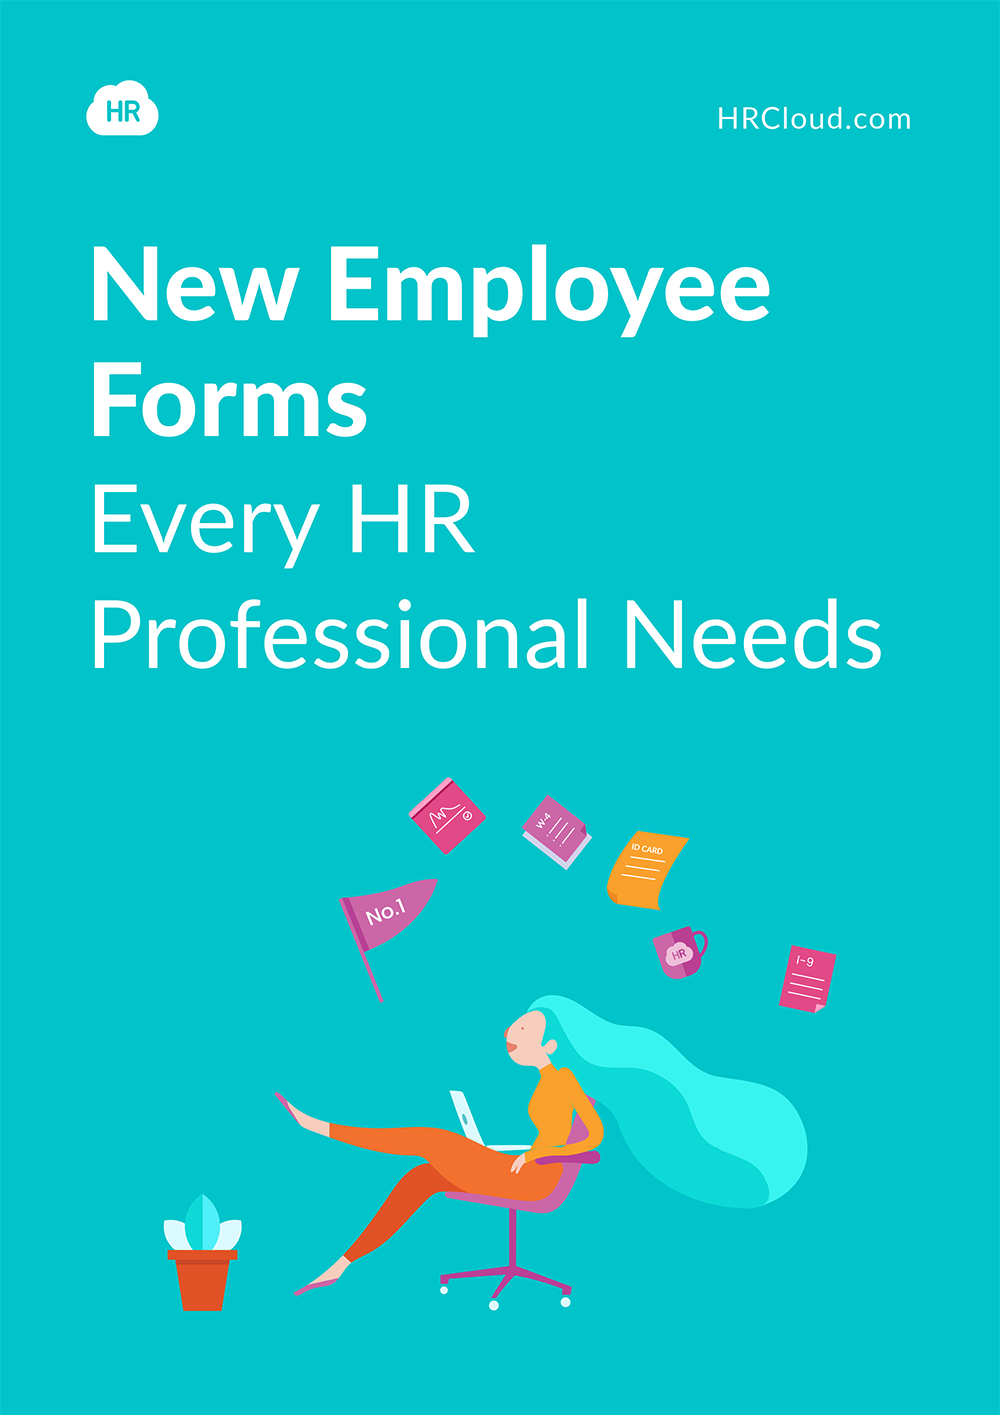 New Employee Forms Every HR Professional Needs